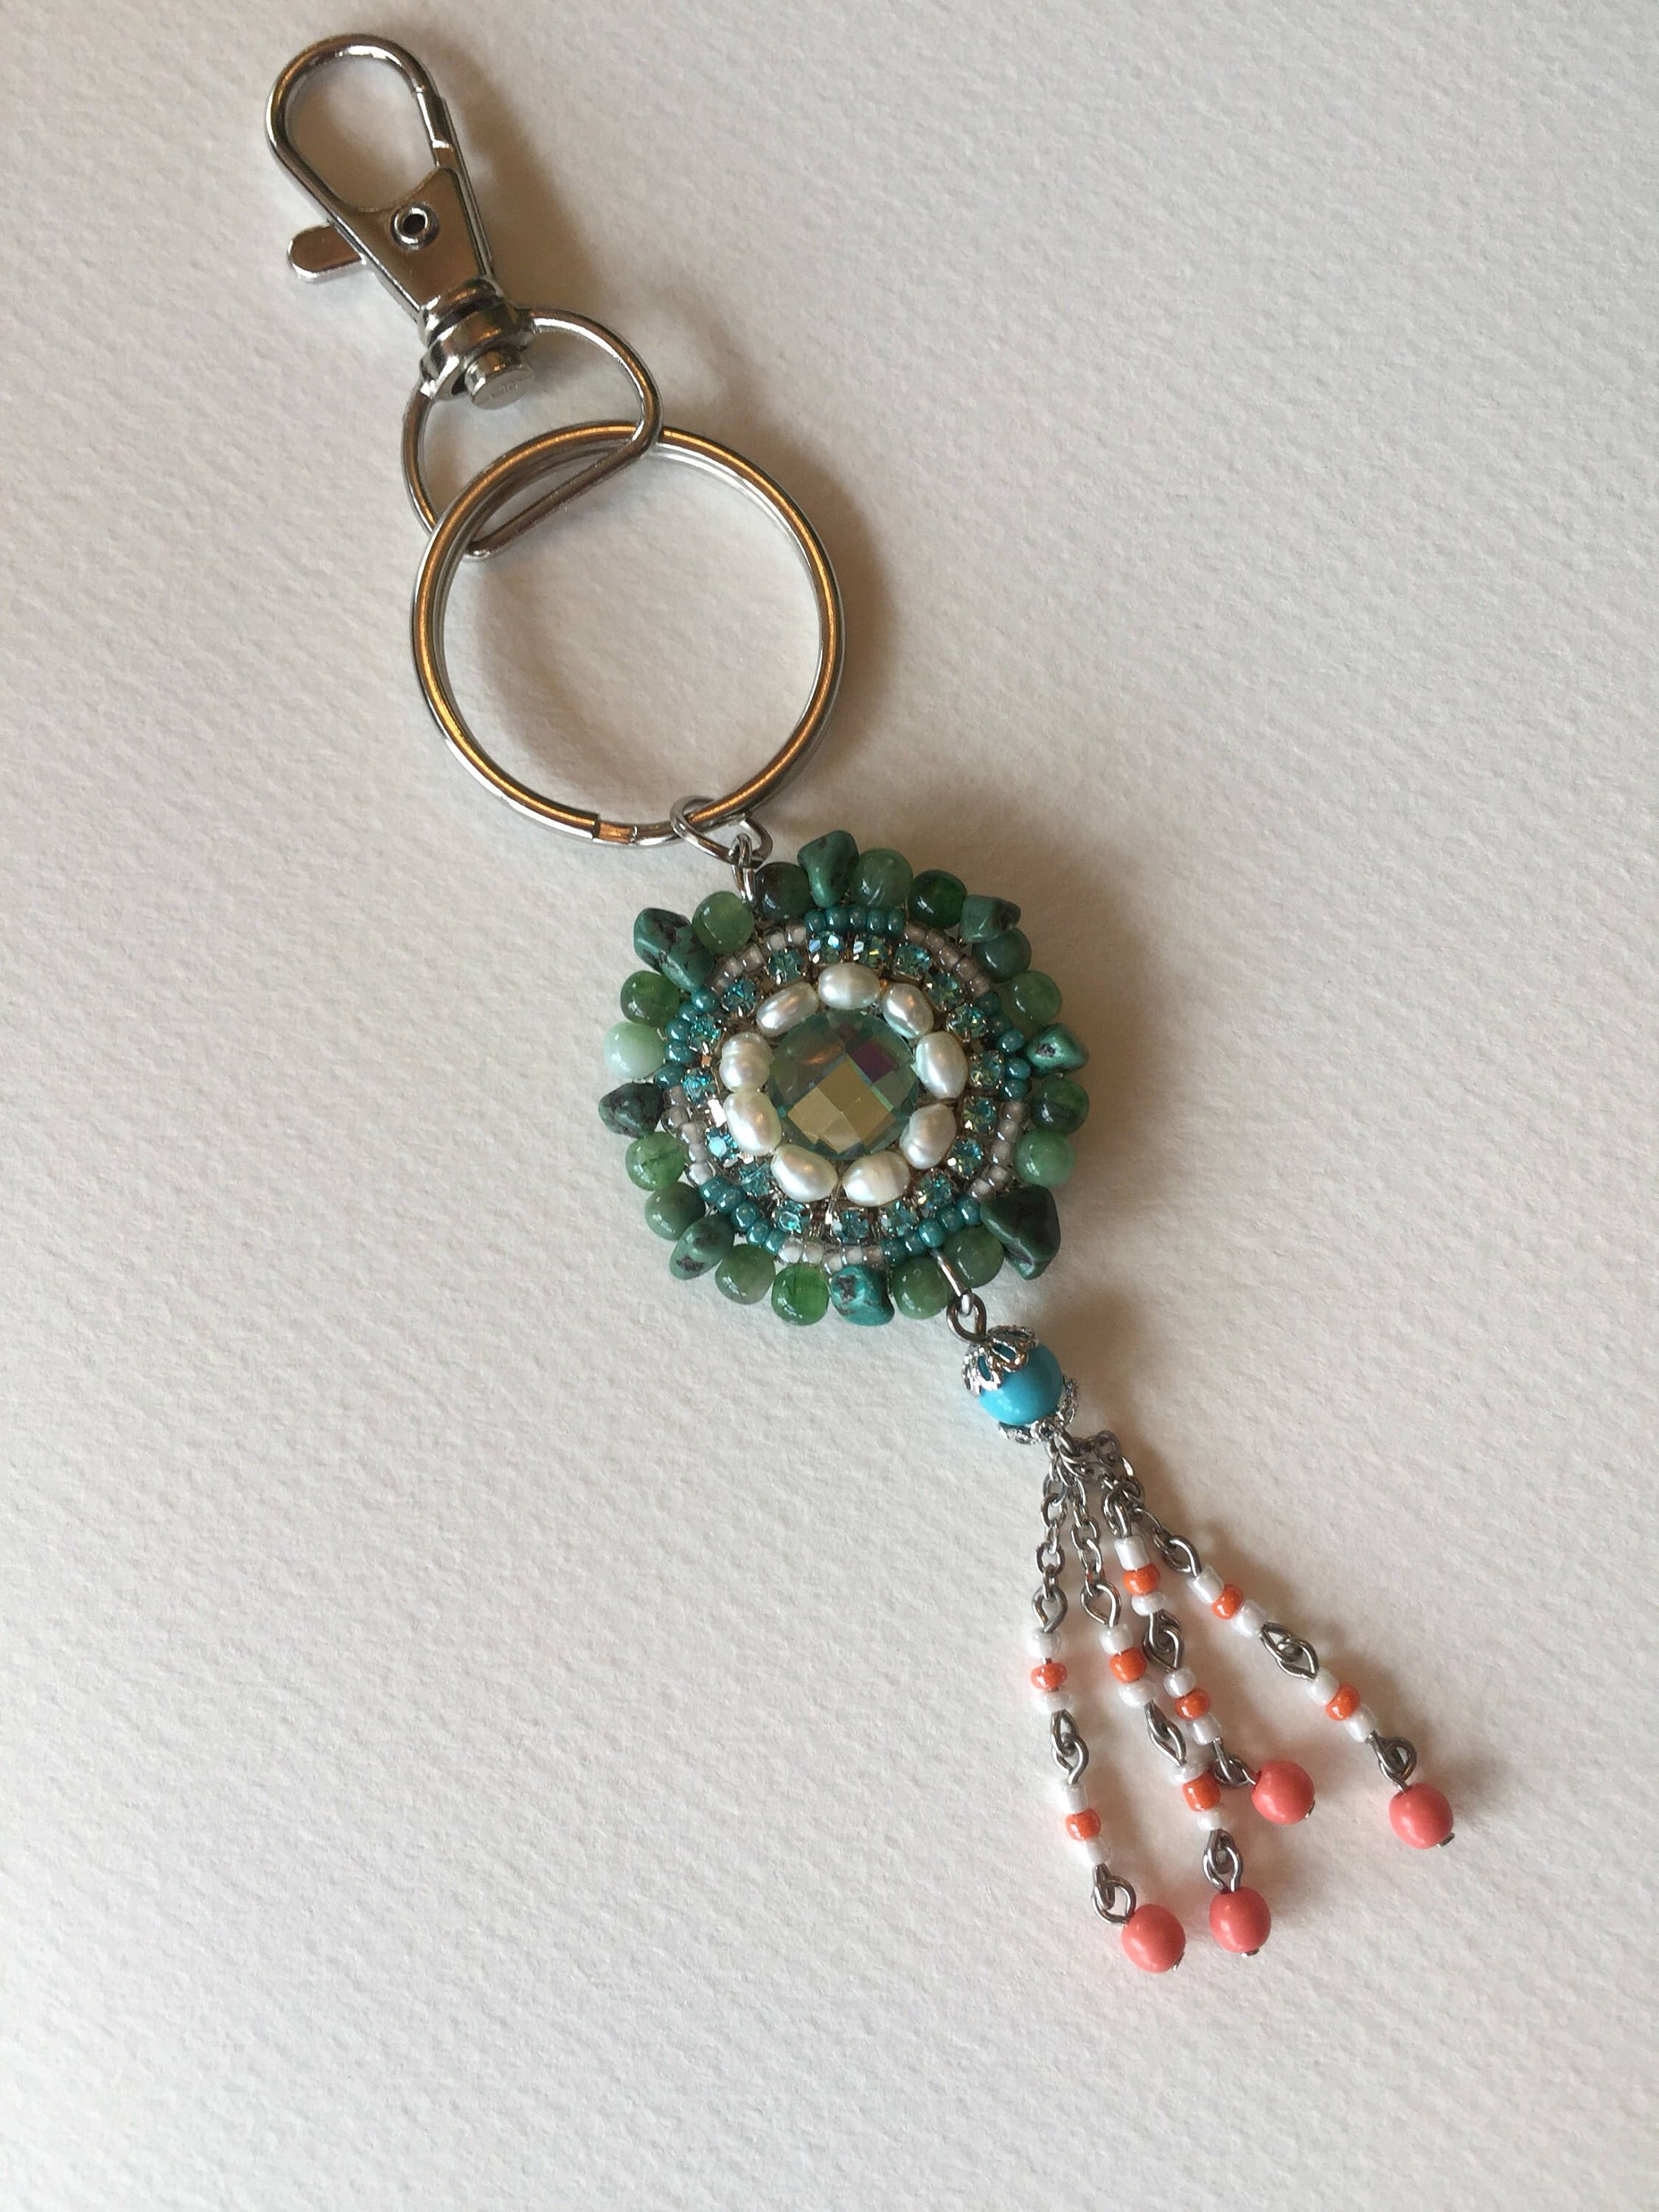 key mondays glass orb something make rings diy keychain chain